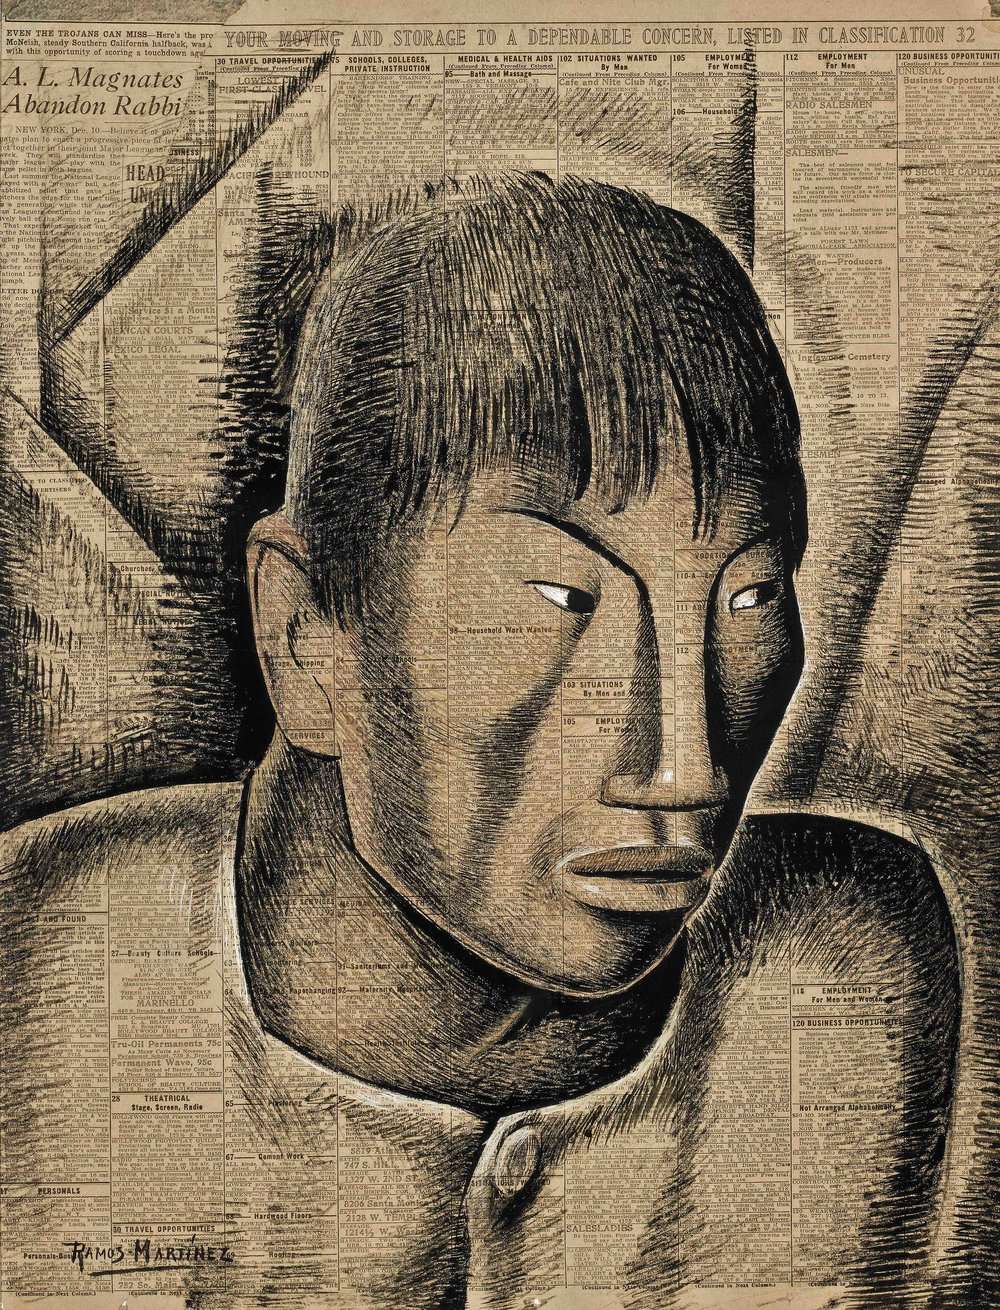 Cabeza Indígena / Indian Head  1934 tempera on newsprint / temple sobre papel periódico ( Los Angeles Times , 1934) 21.3 x 16.3 inches; 54 x 41.3 centímetros Private collection